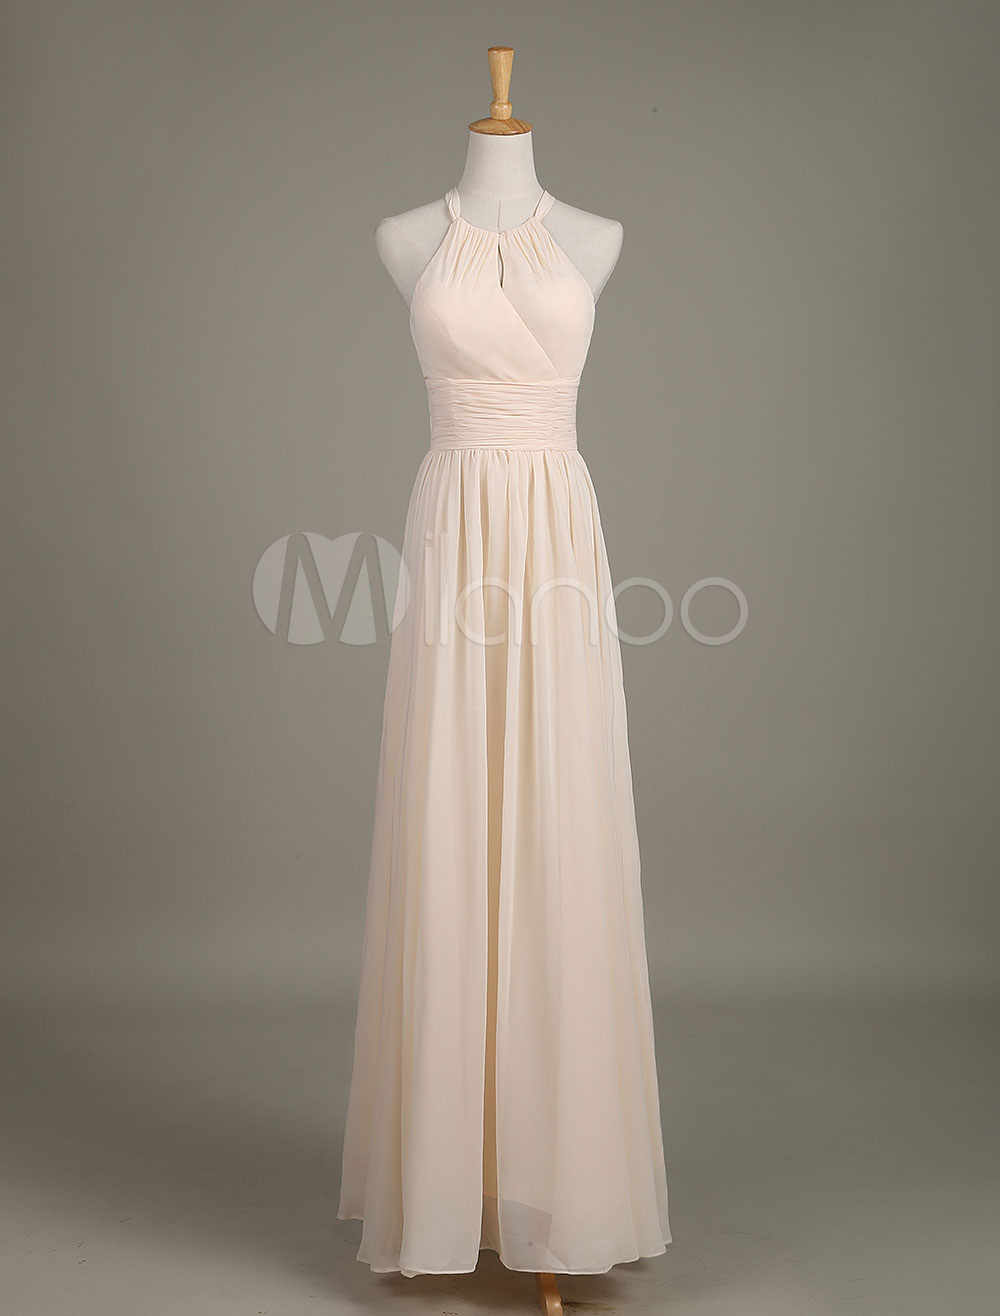 Long Bridesmaid Dress Halter Backless Nude Cut Out Ruched Chiffon A Line Wedding Party Dress